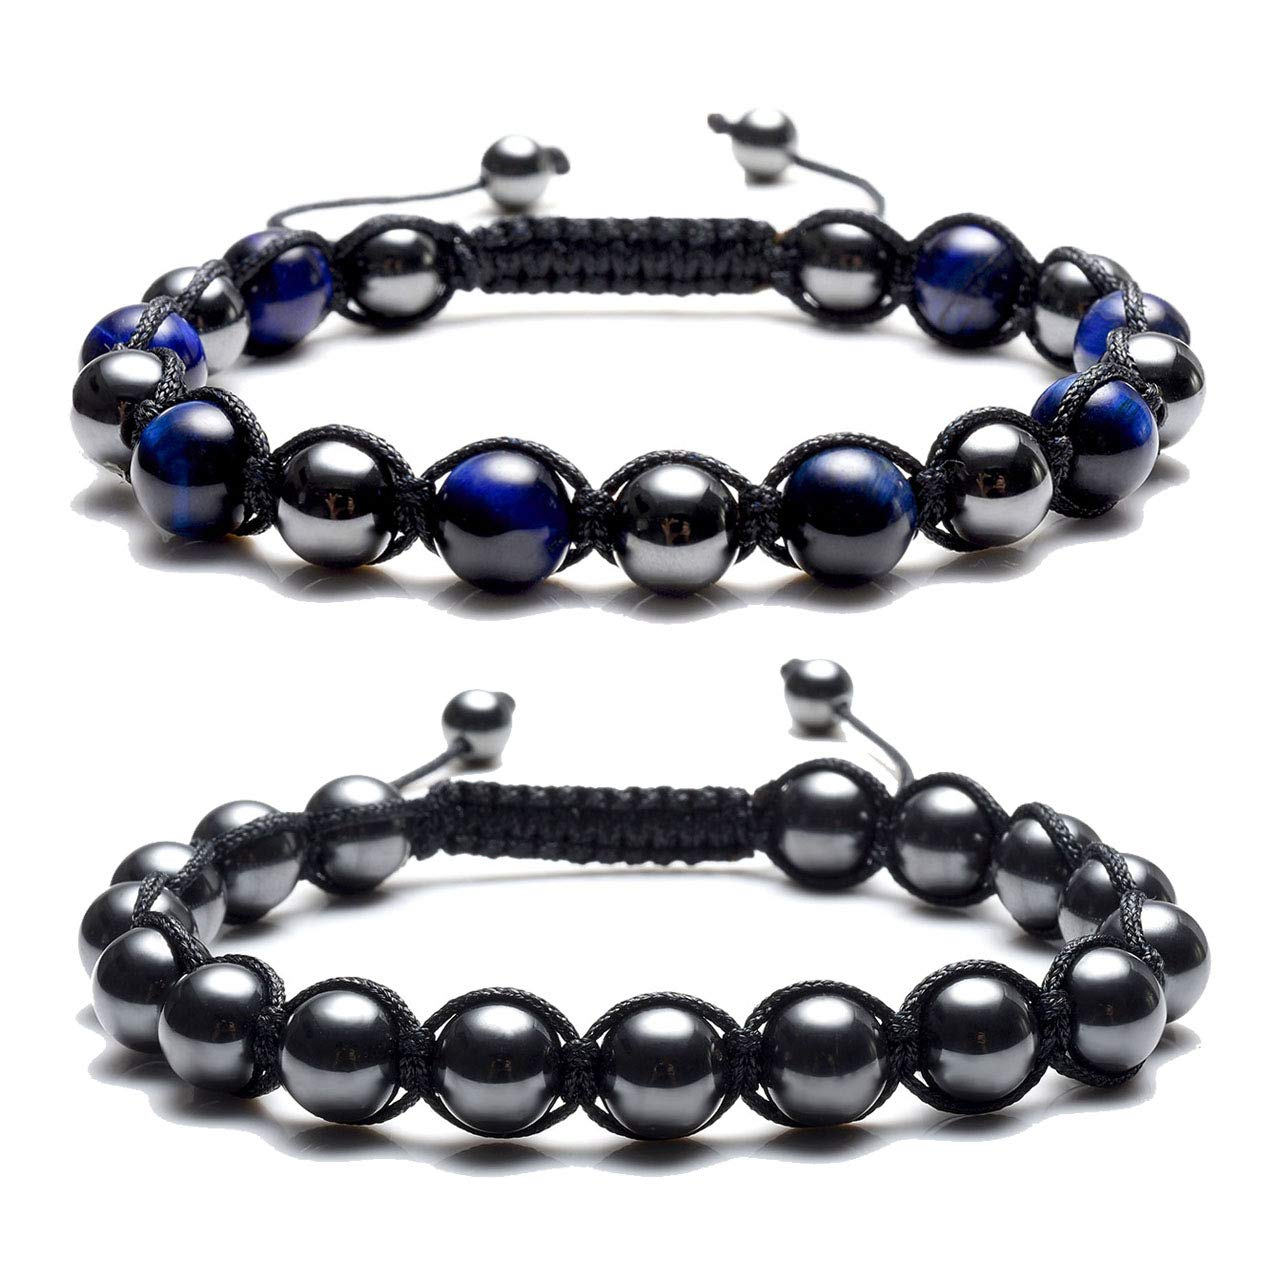 Top Plaza Men's Women's Reiki Healing Energy Natural Tiger Eye Stone Magnetic Hematite Therapy Beads Macrame Adjustable Braided Link Bracelet(Blue Tiger Eye + Magnetic Hematite Beads)